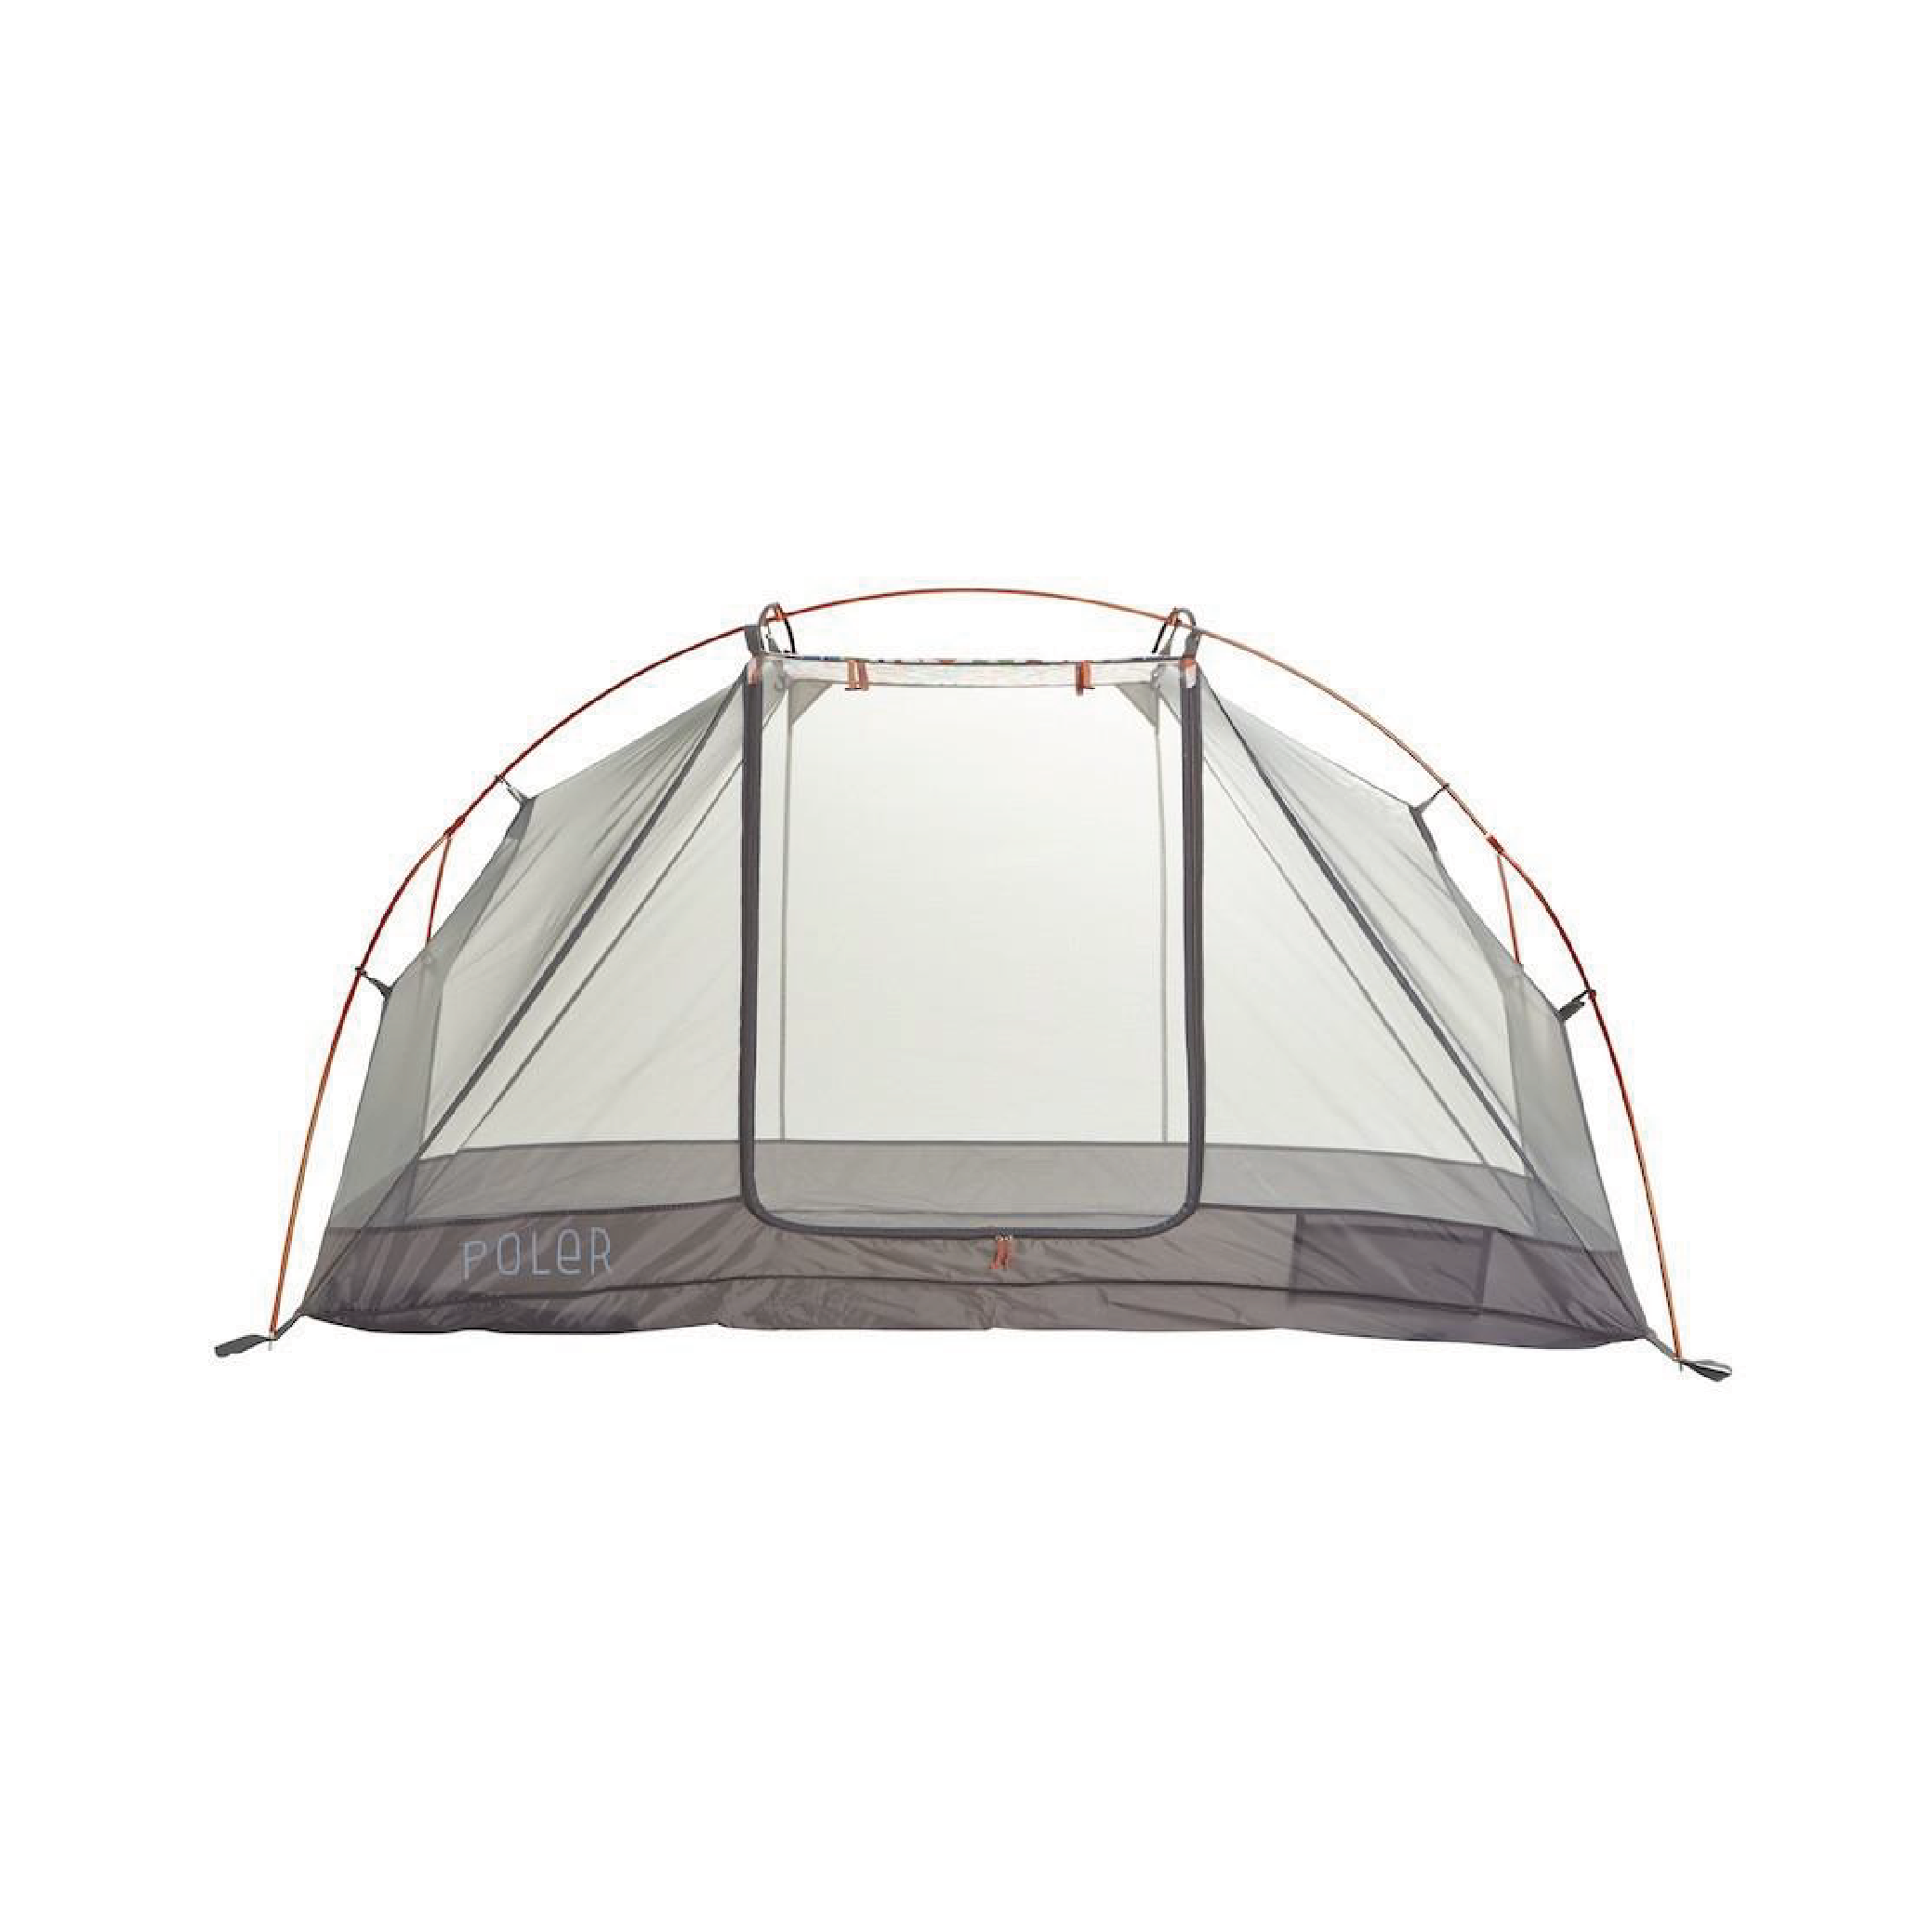 Poler 2 Person Tent 5.png